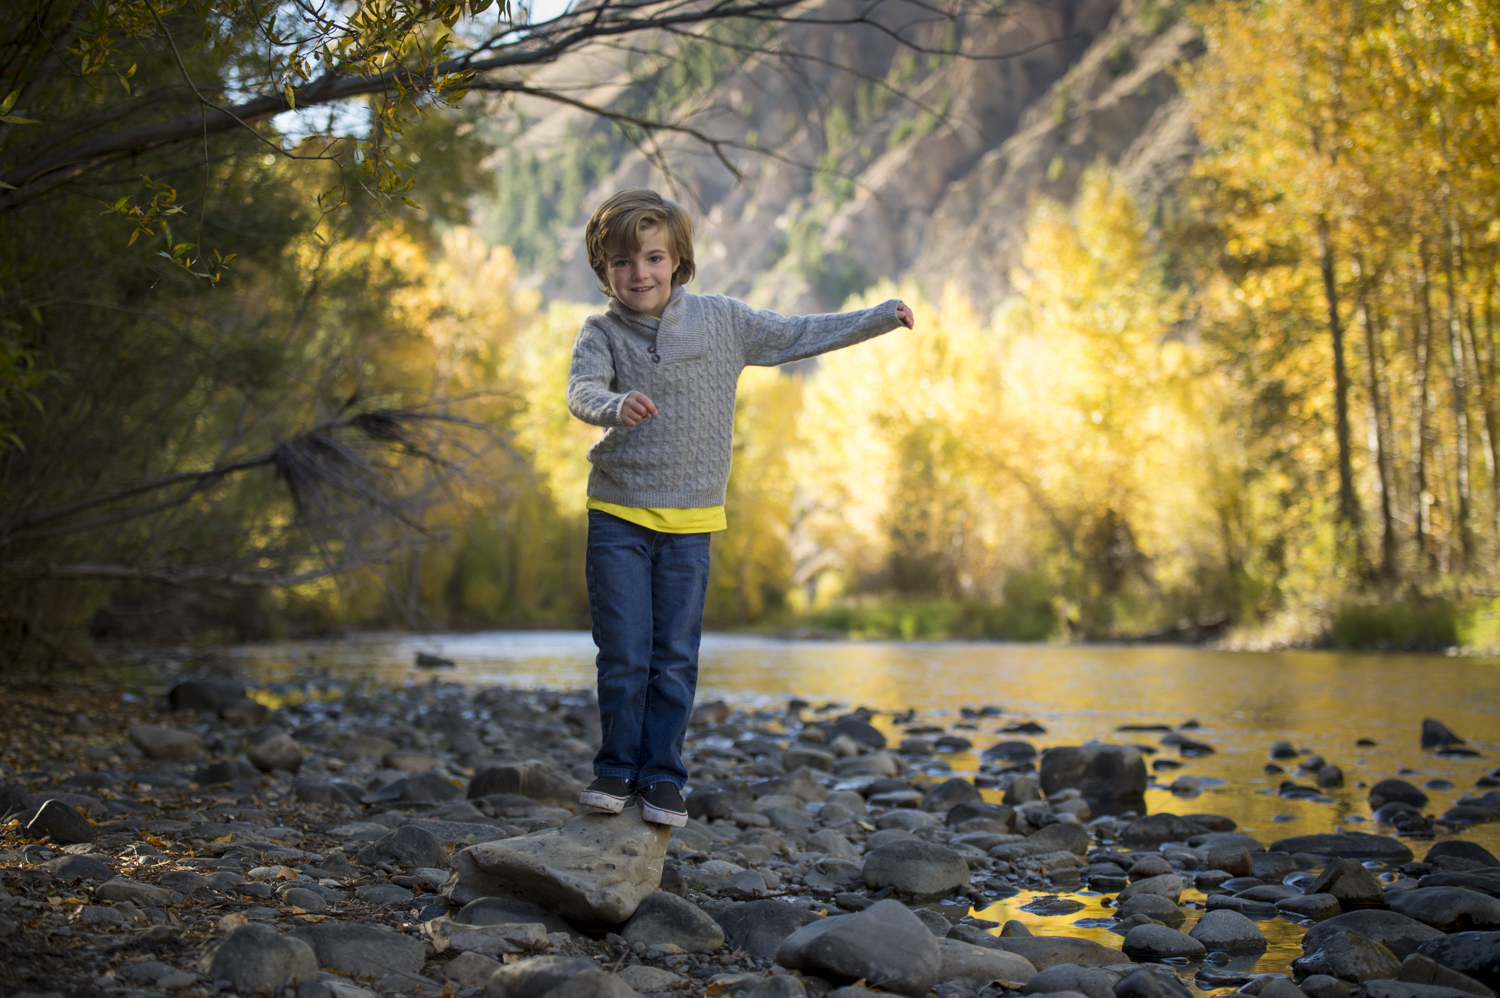 fall_lifestyle_family_leaves_candid_playing-011.jpg